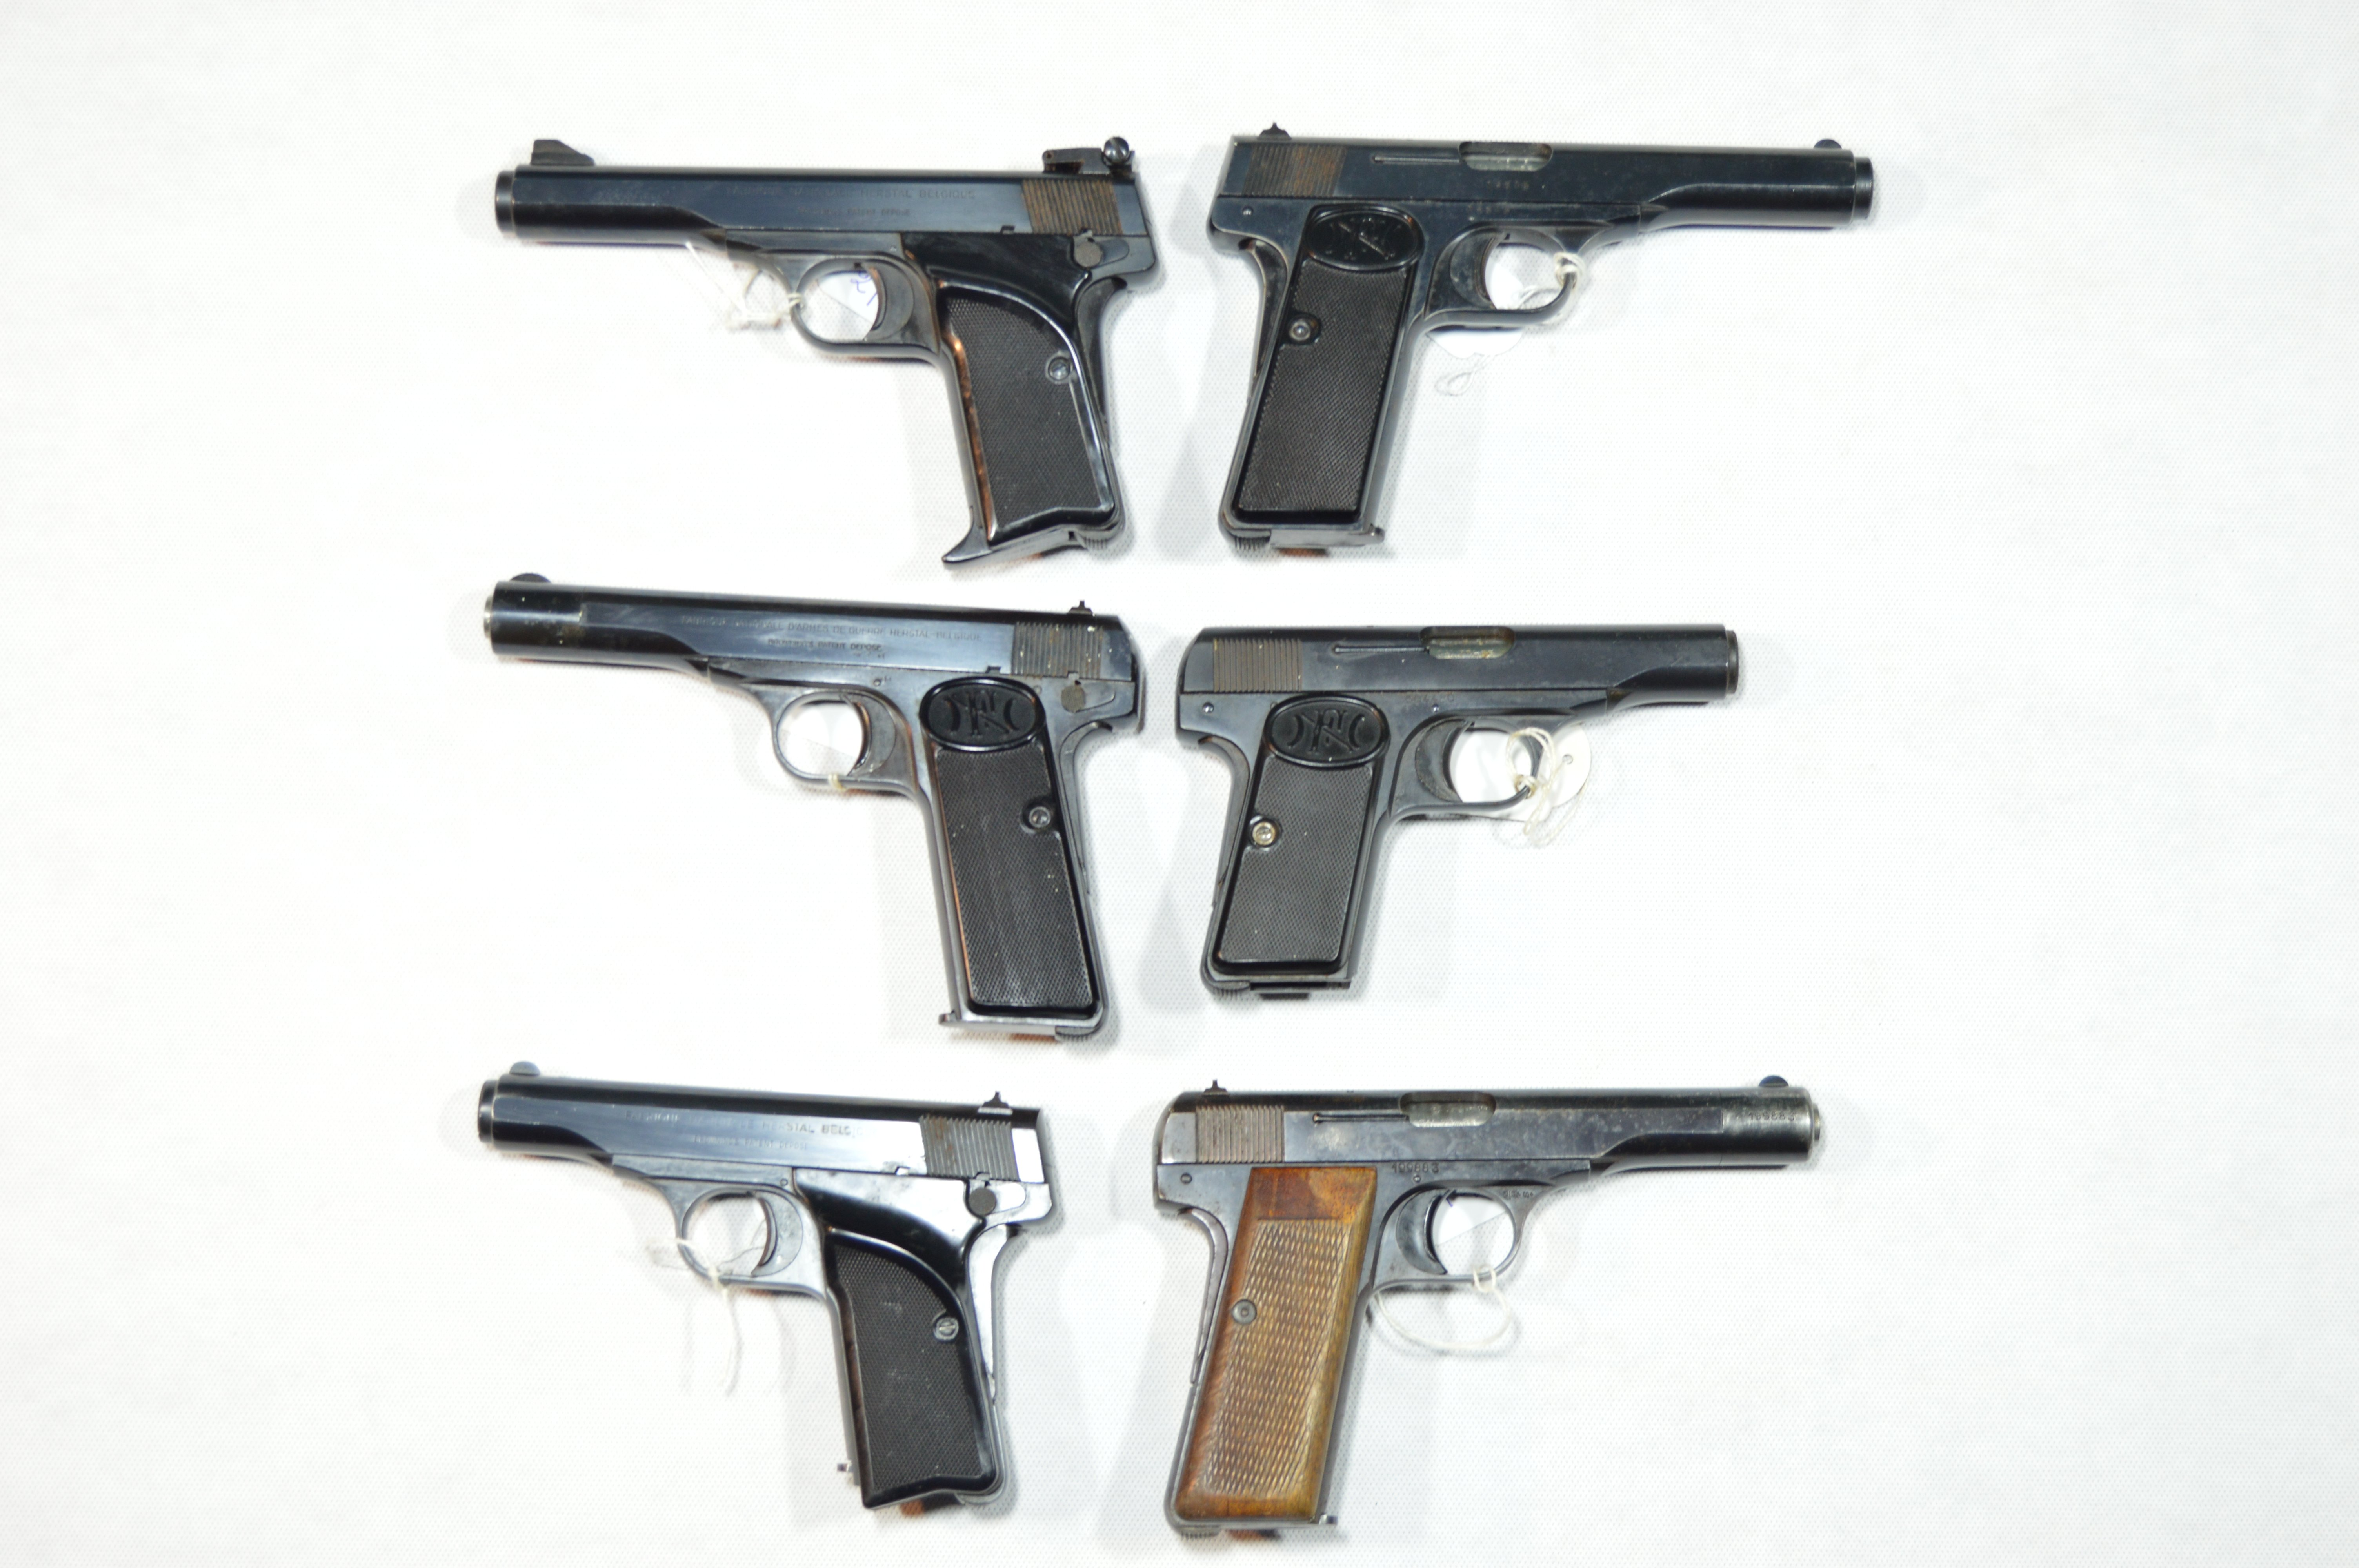 FN Mixed Models